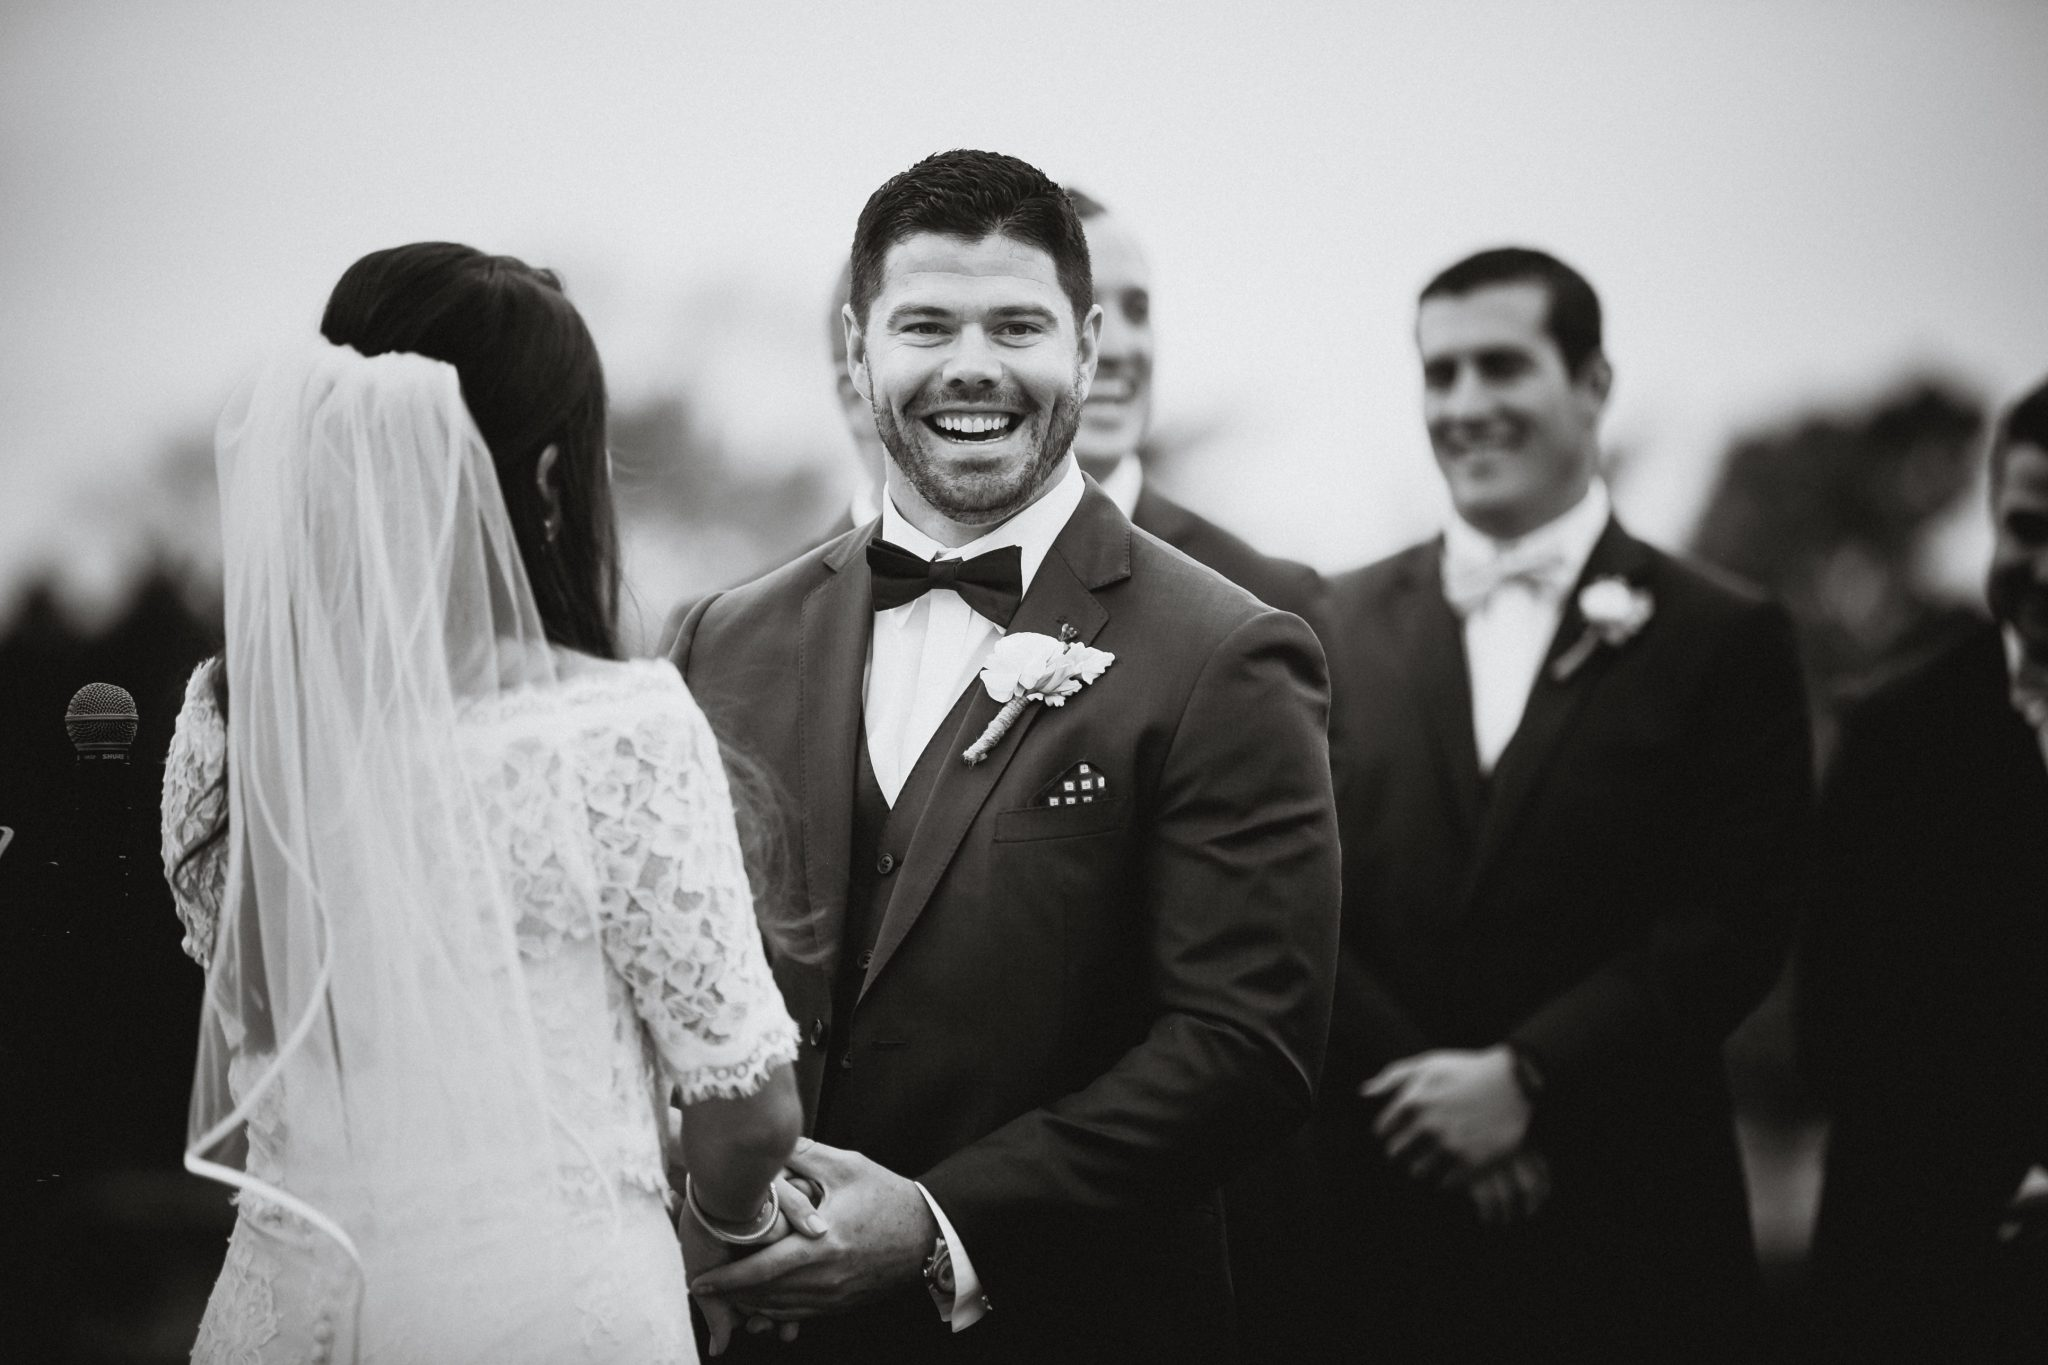 Black and white photo of the groom smiling during the ceremony